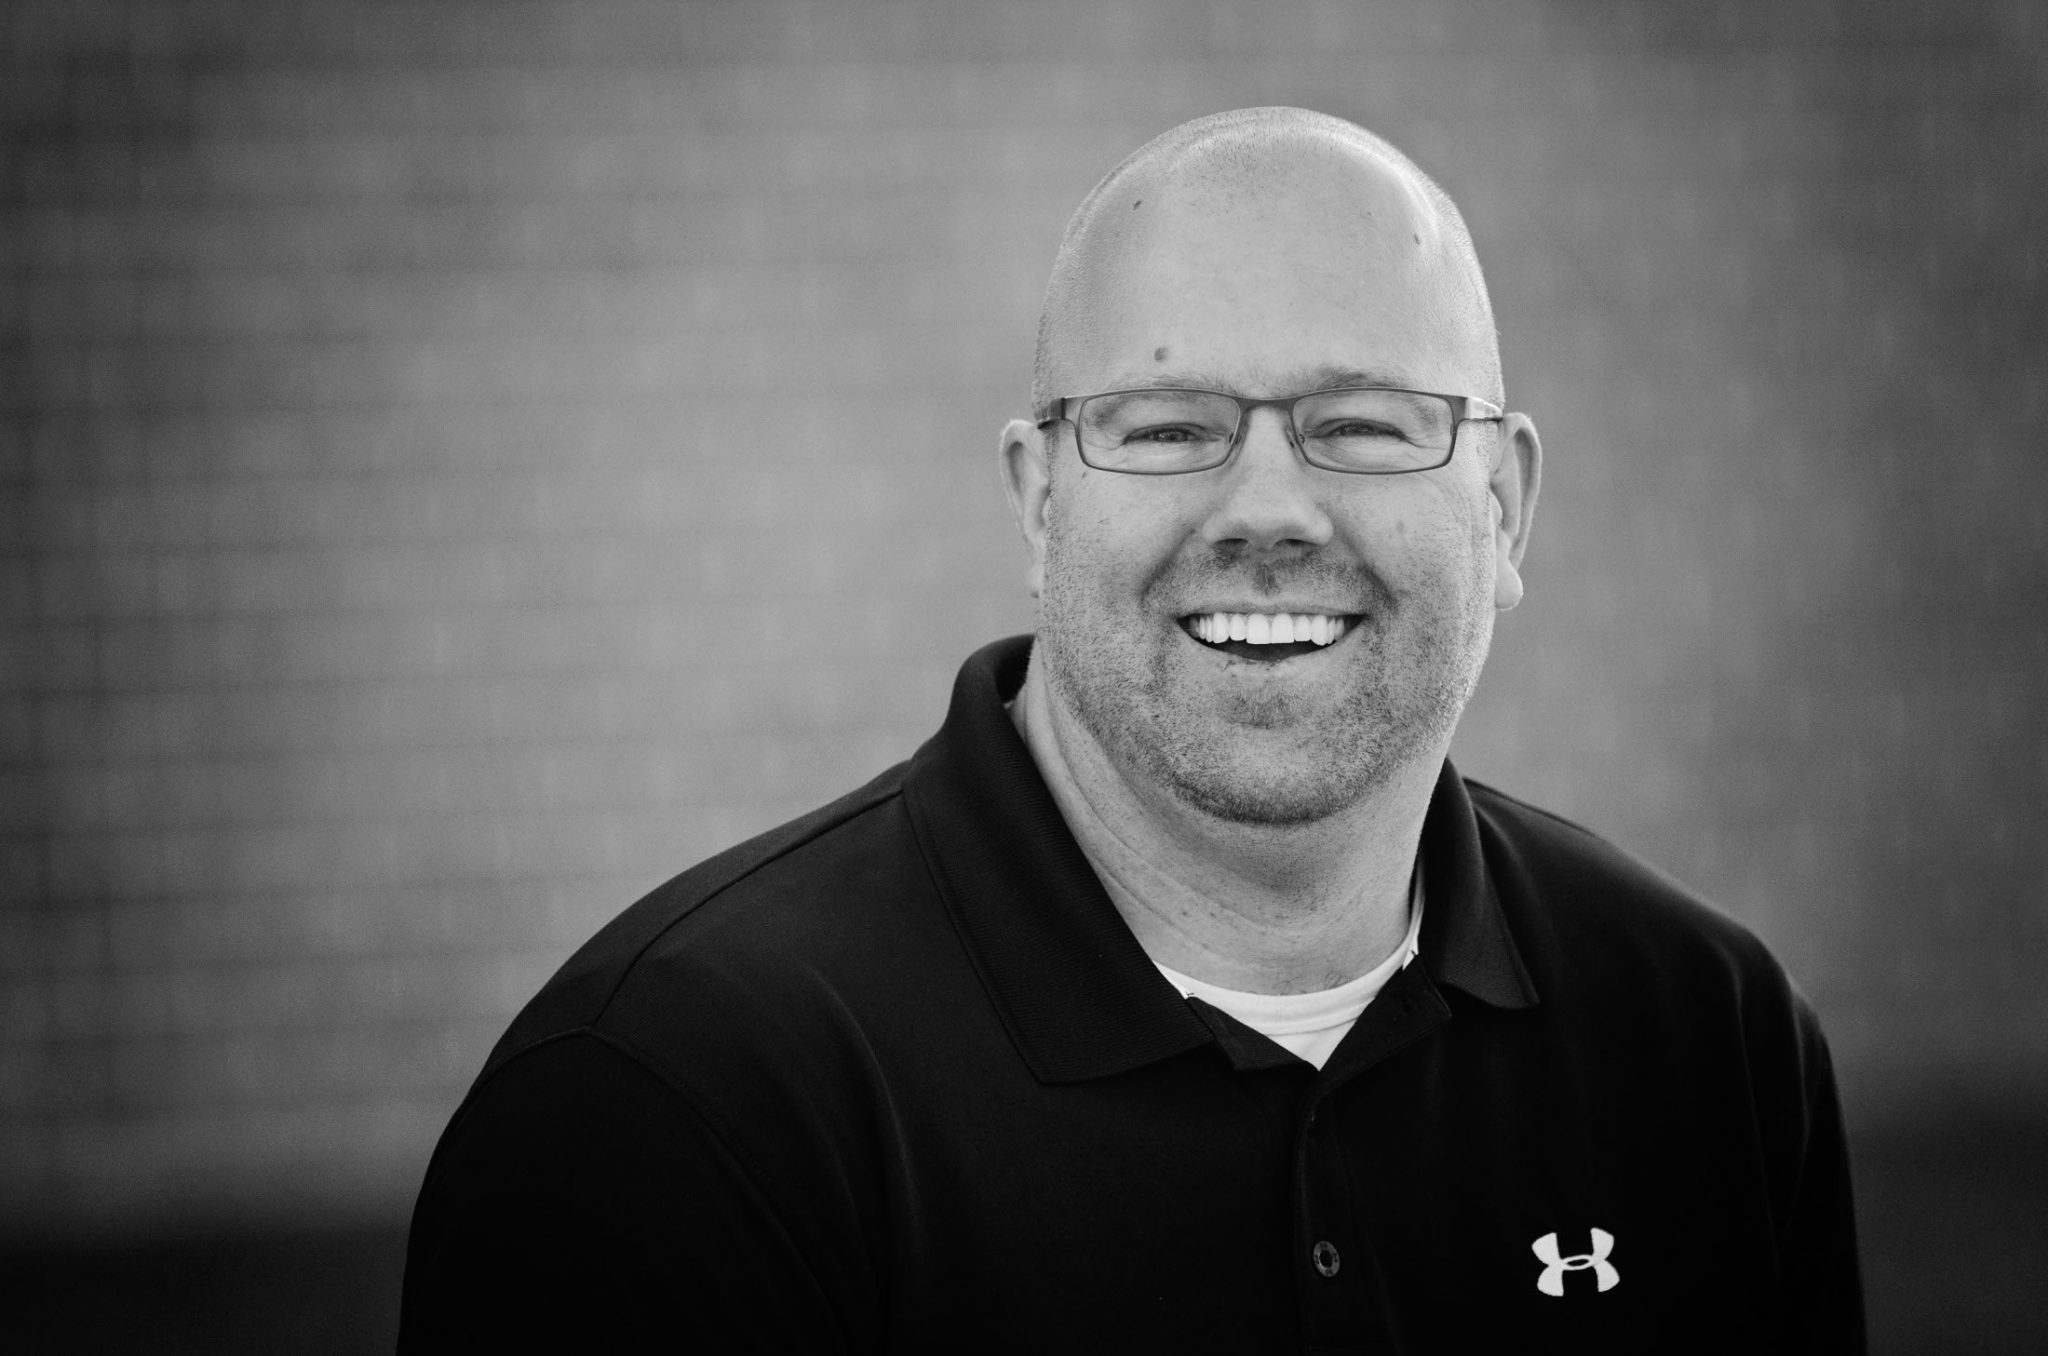 Chad Schuchmann, Youth Ministries Director at The Water's Edge